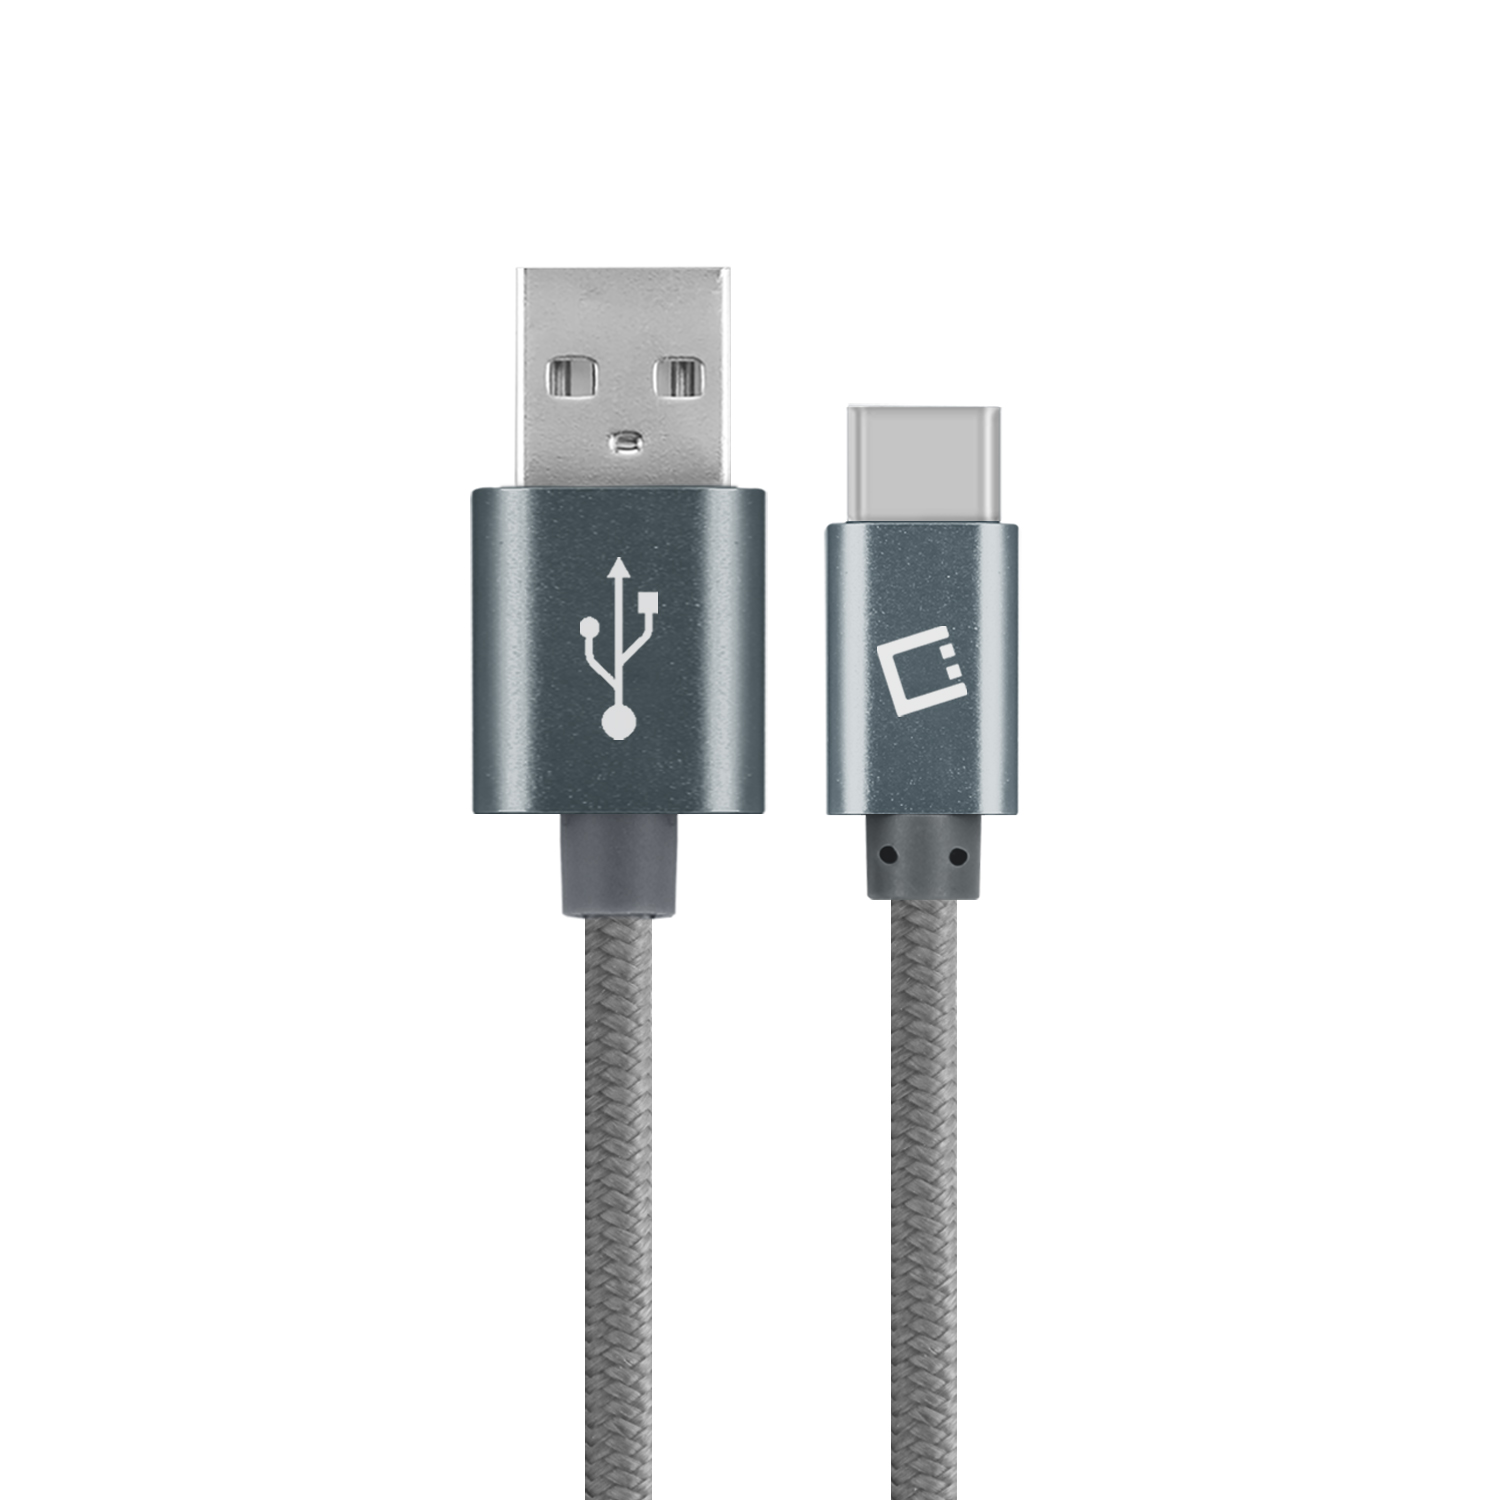 LG Stylo 4 USB Type-C To Type-A Braided Data Power Cable Grey 6ft Braided